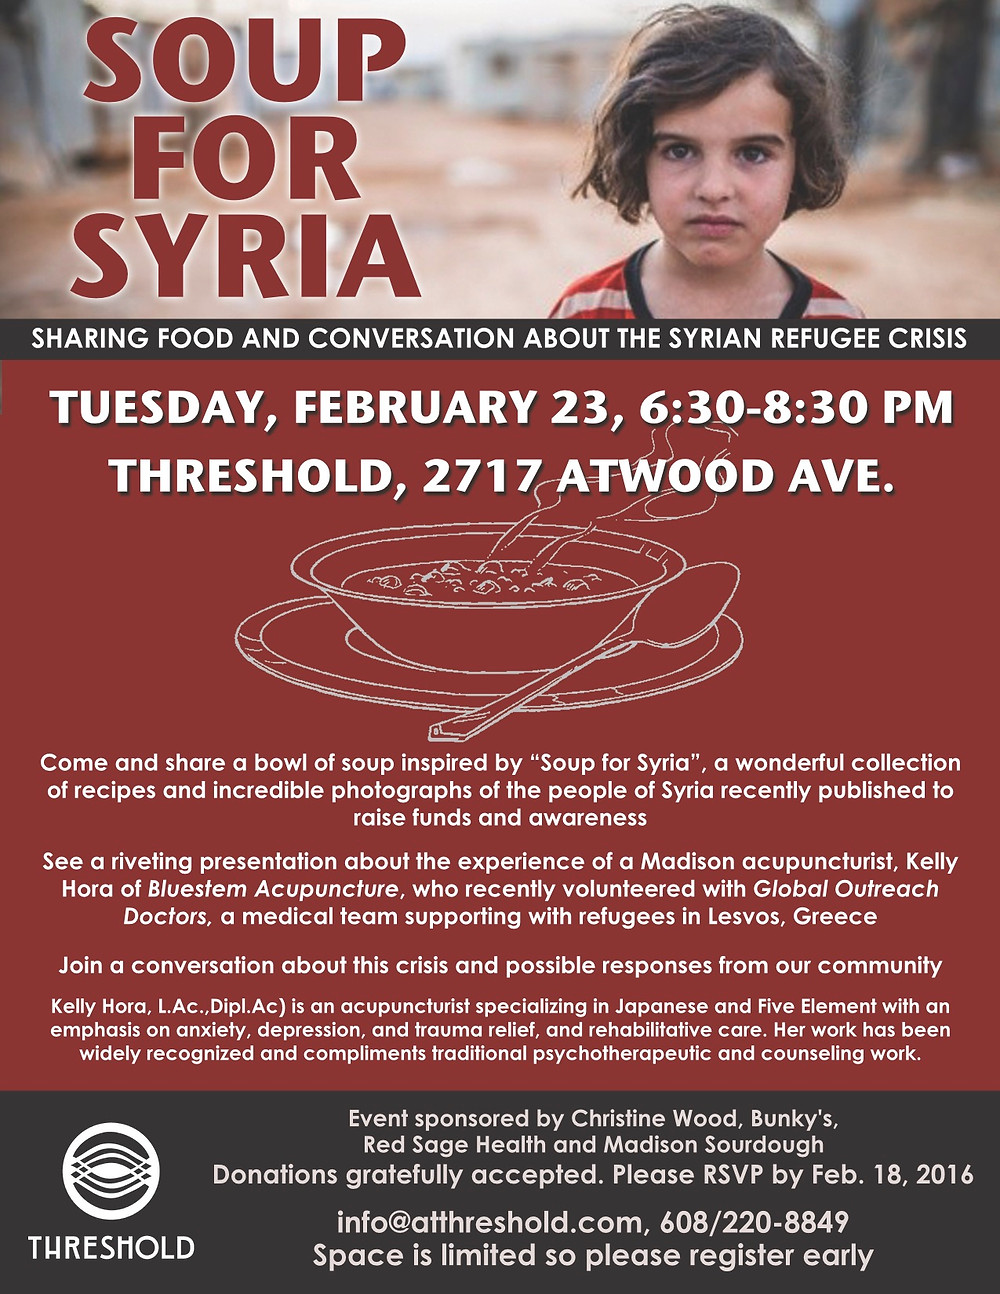 Soup for Syria Event Announcement